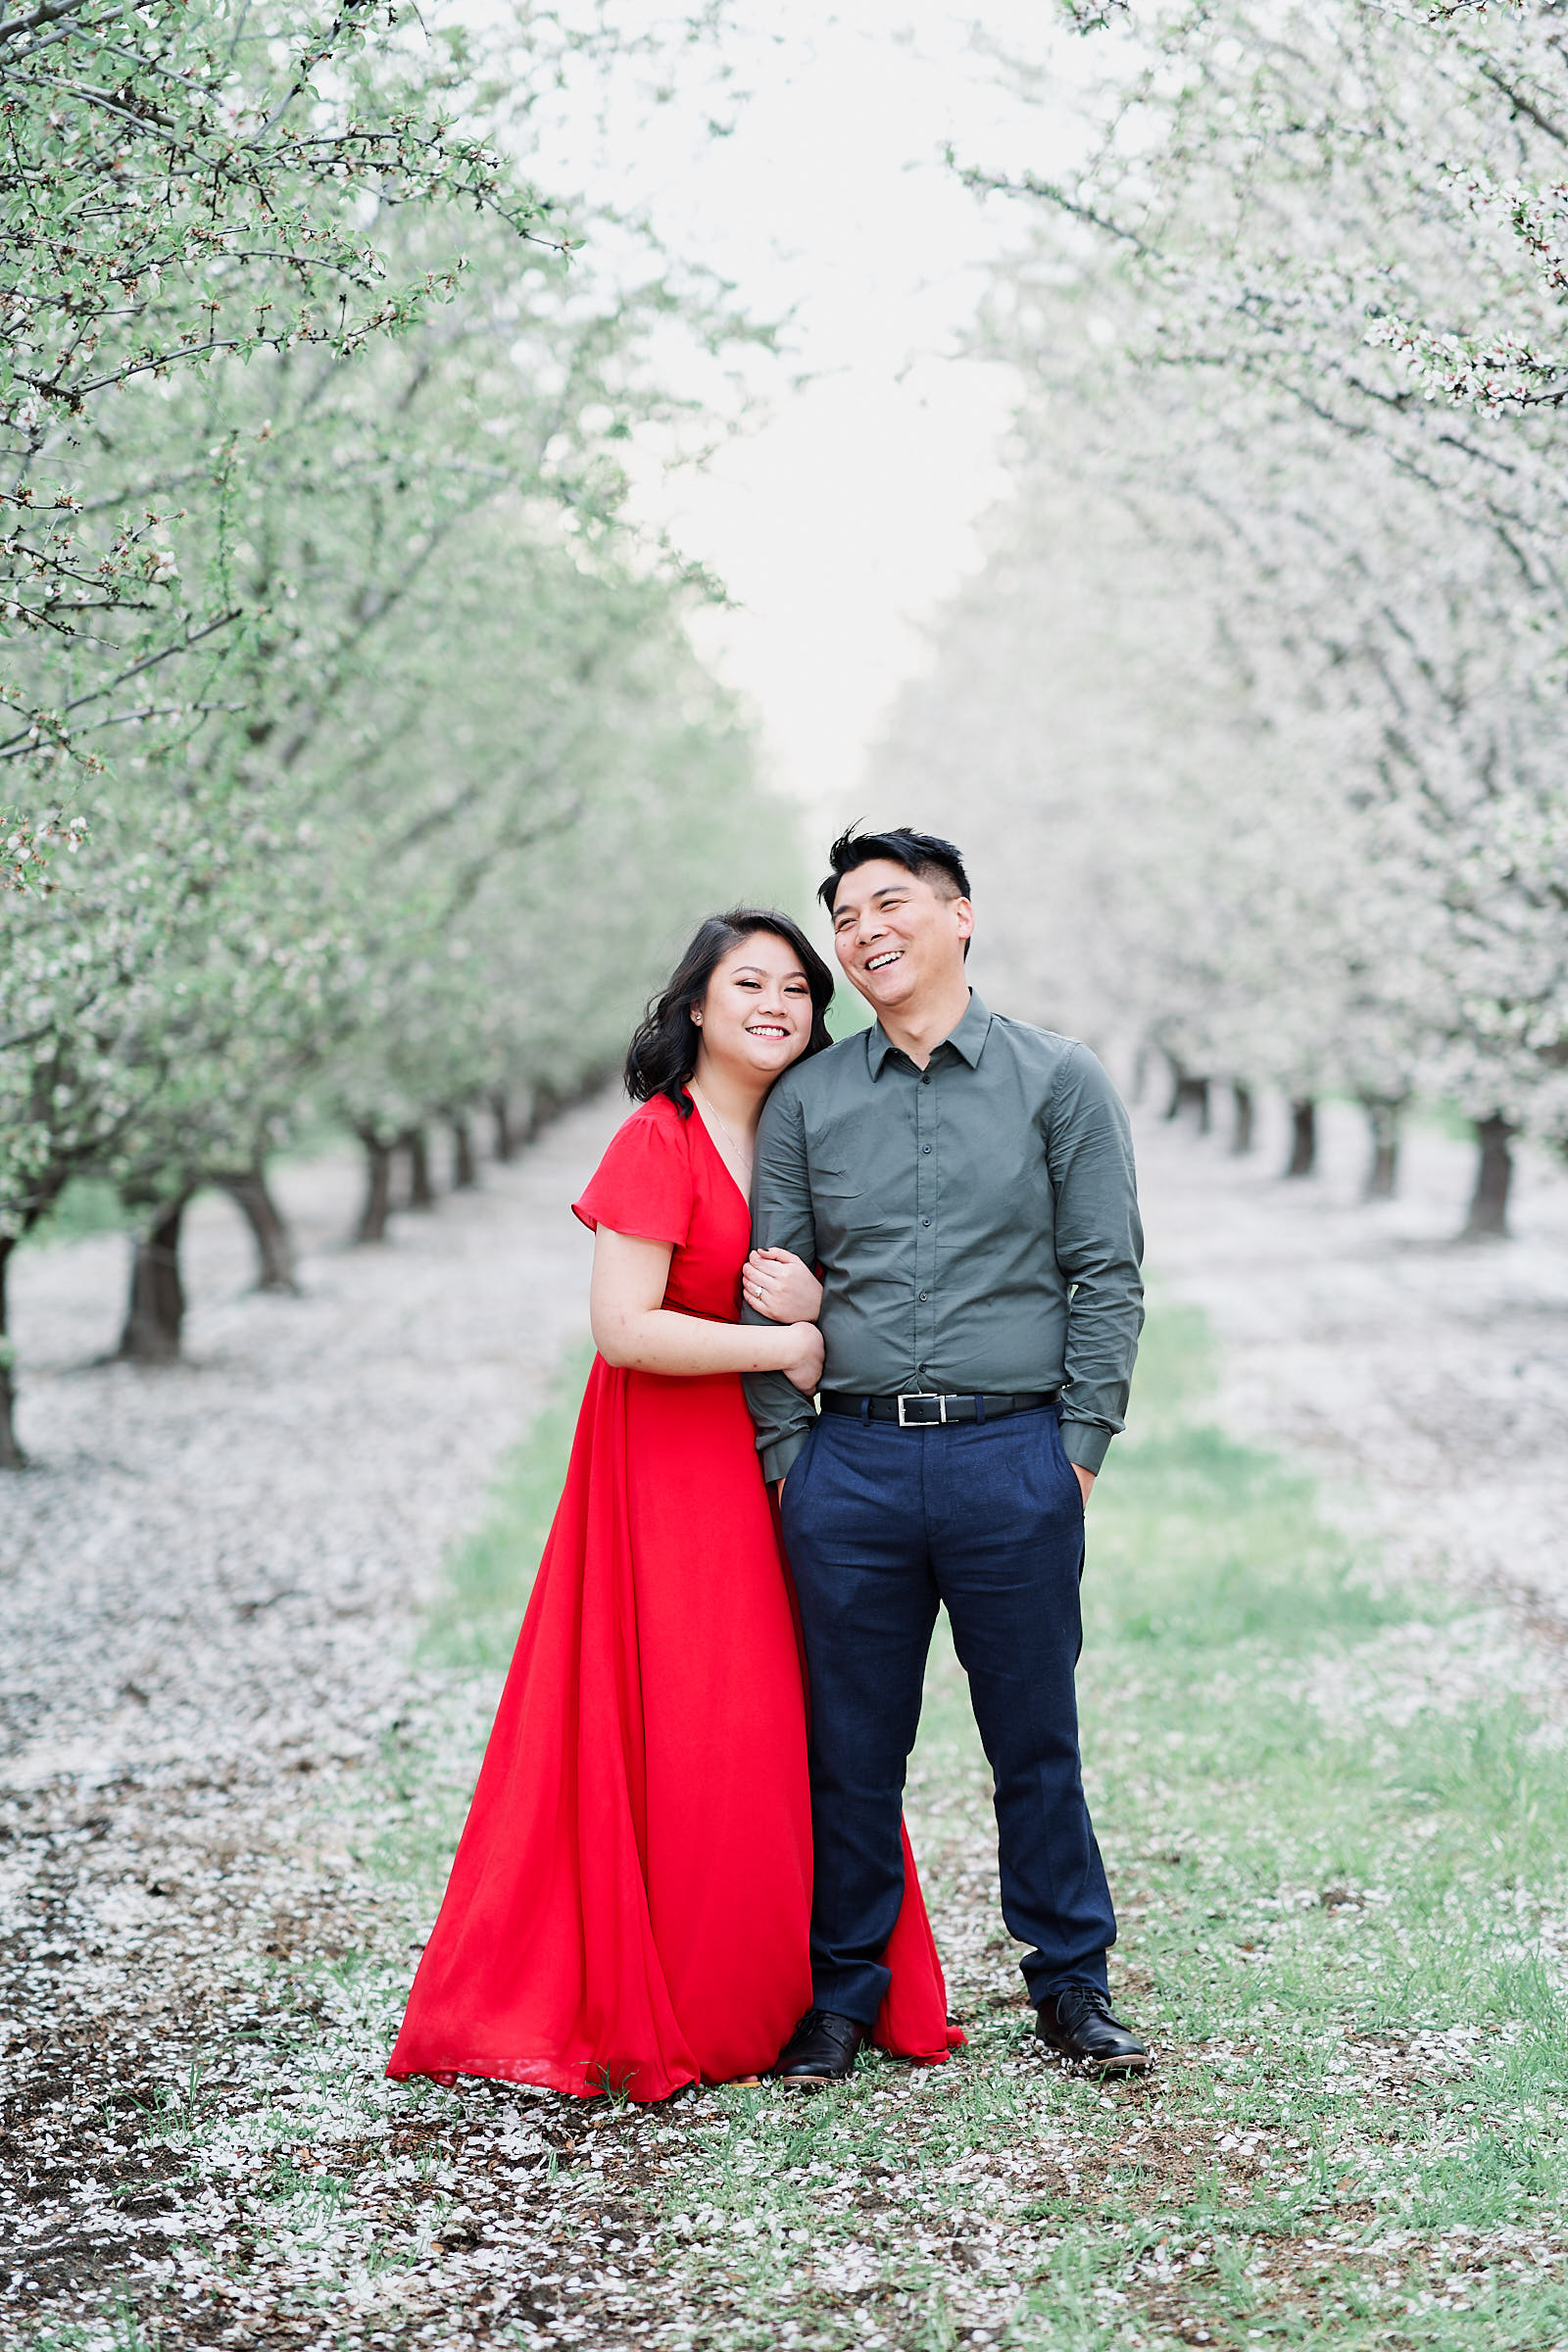 Spring Time Engagement Photography Bay Area California